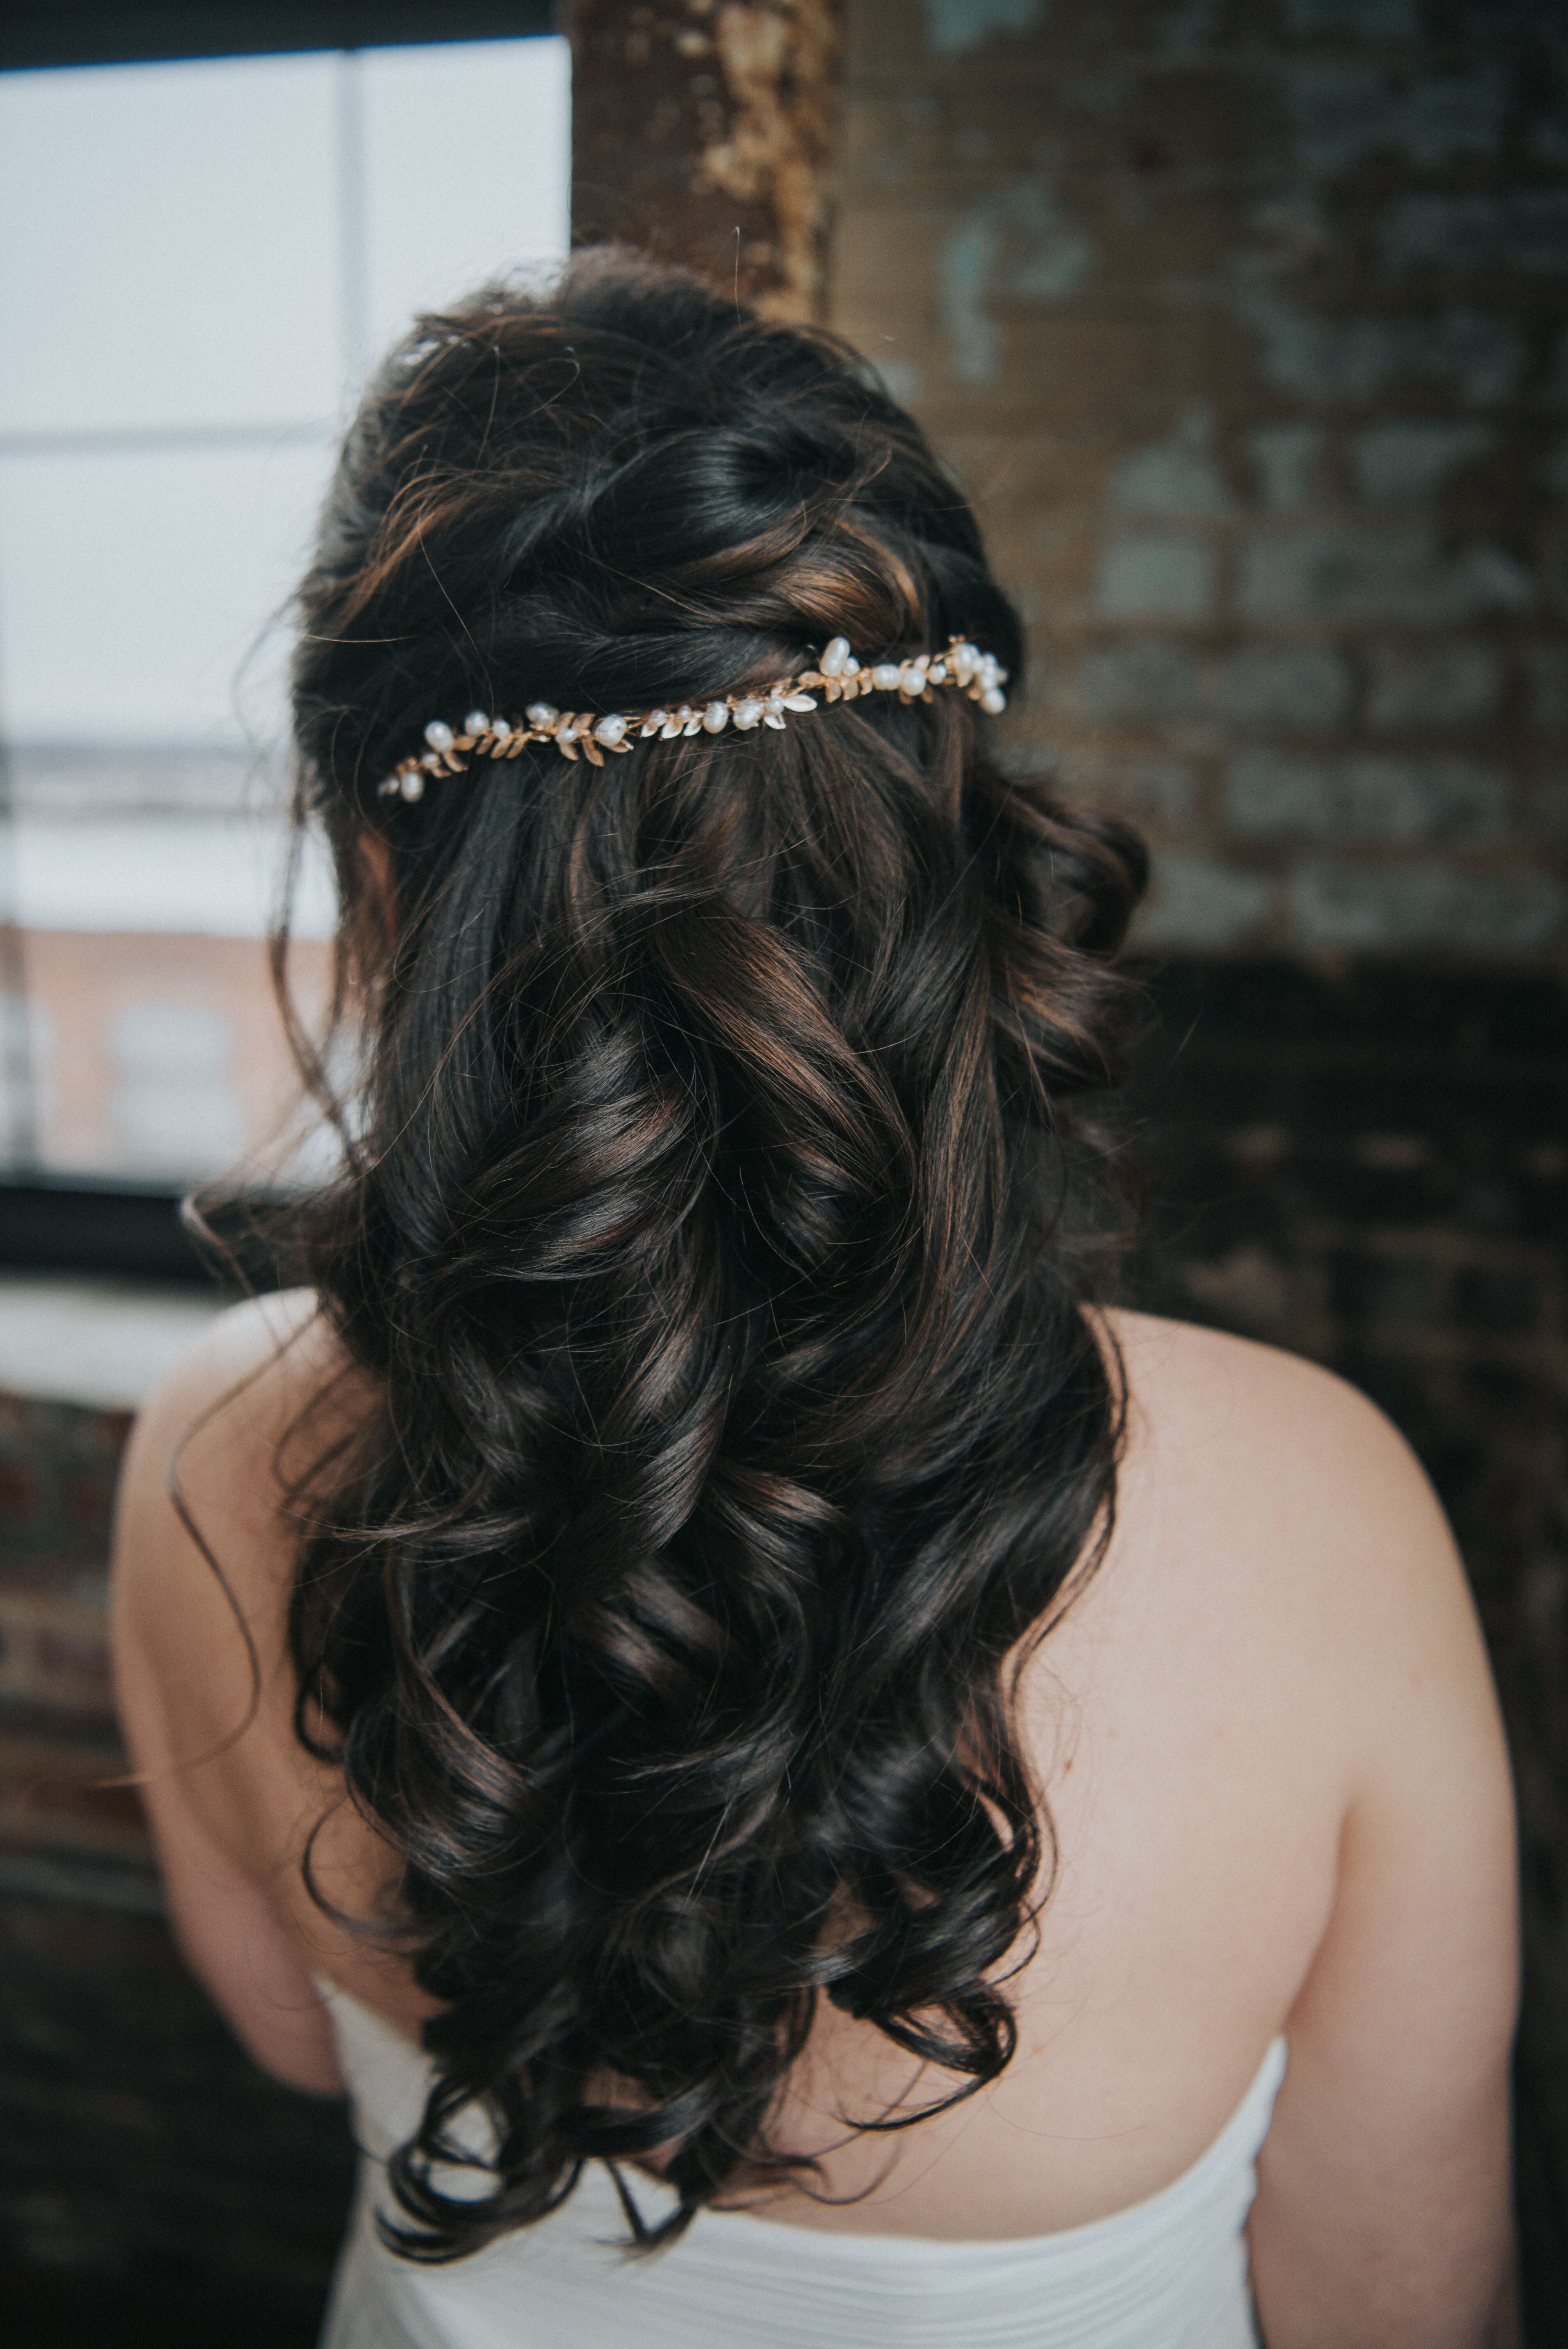 beauty salons in lehigh valley, pa - the knot